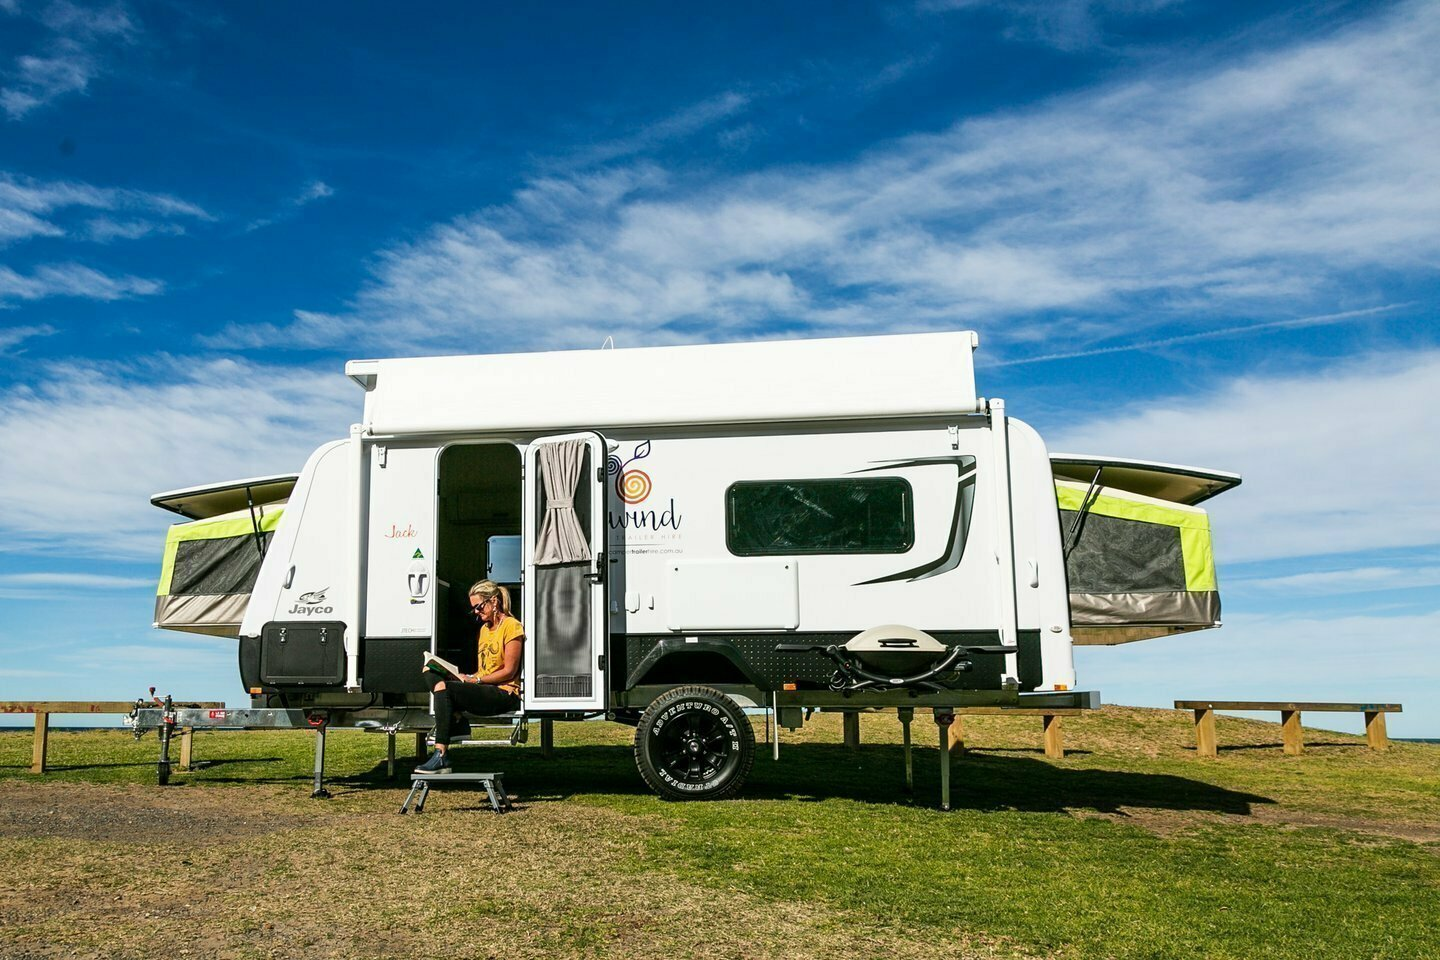 Expander For Hire In Appin Nsw From 110 0 Unwind Camper Trailer